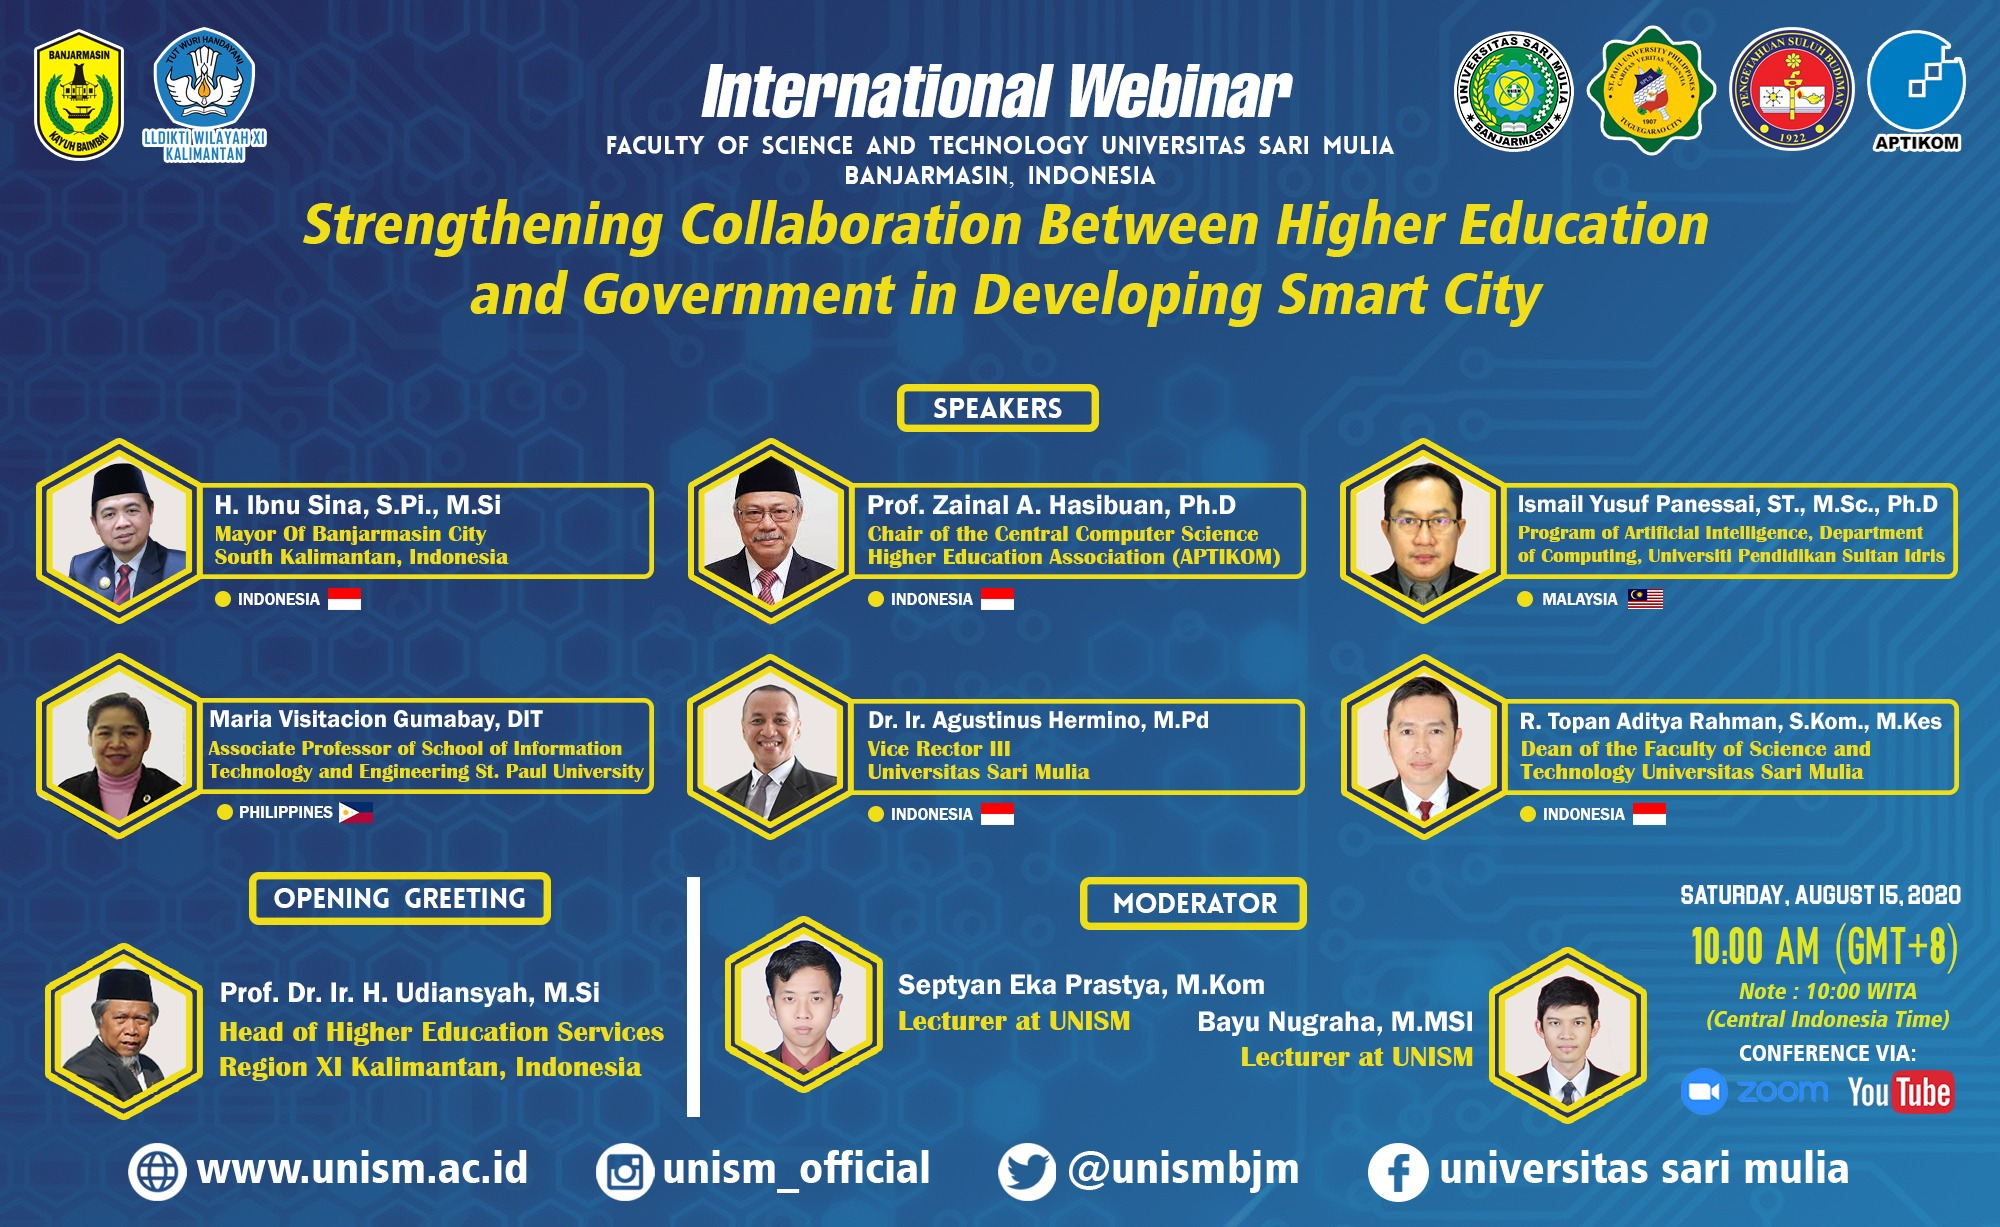 """Materials """"INTERNATIONAL WEBINAR 2020 """"STRENGTHENING COLLABORATION BETWEEN HIGHER EDUCATION AND GOVERNMENT IN DEVELOPING SMART CITY"""""""